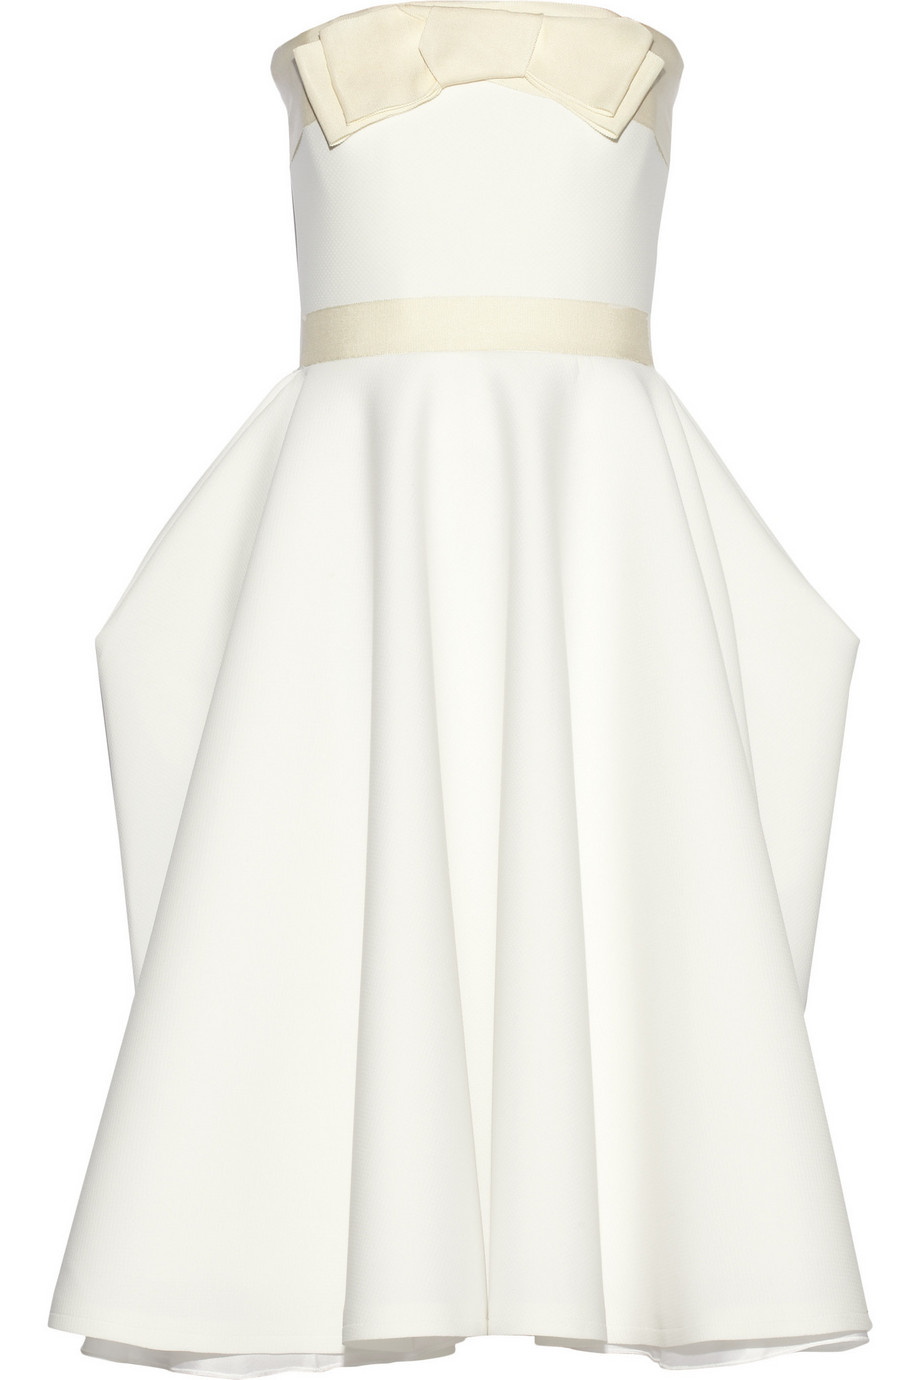 Lanvin Grosgrain-Trimmed Piqué Dress, White, Women's, Size: 38